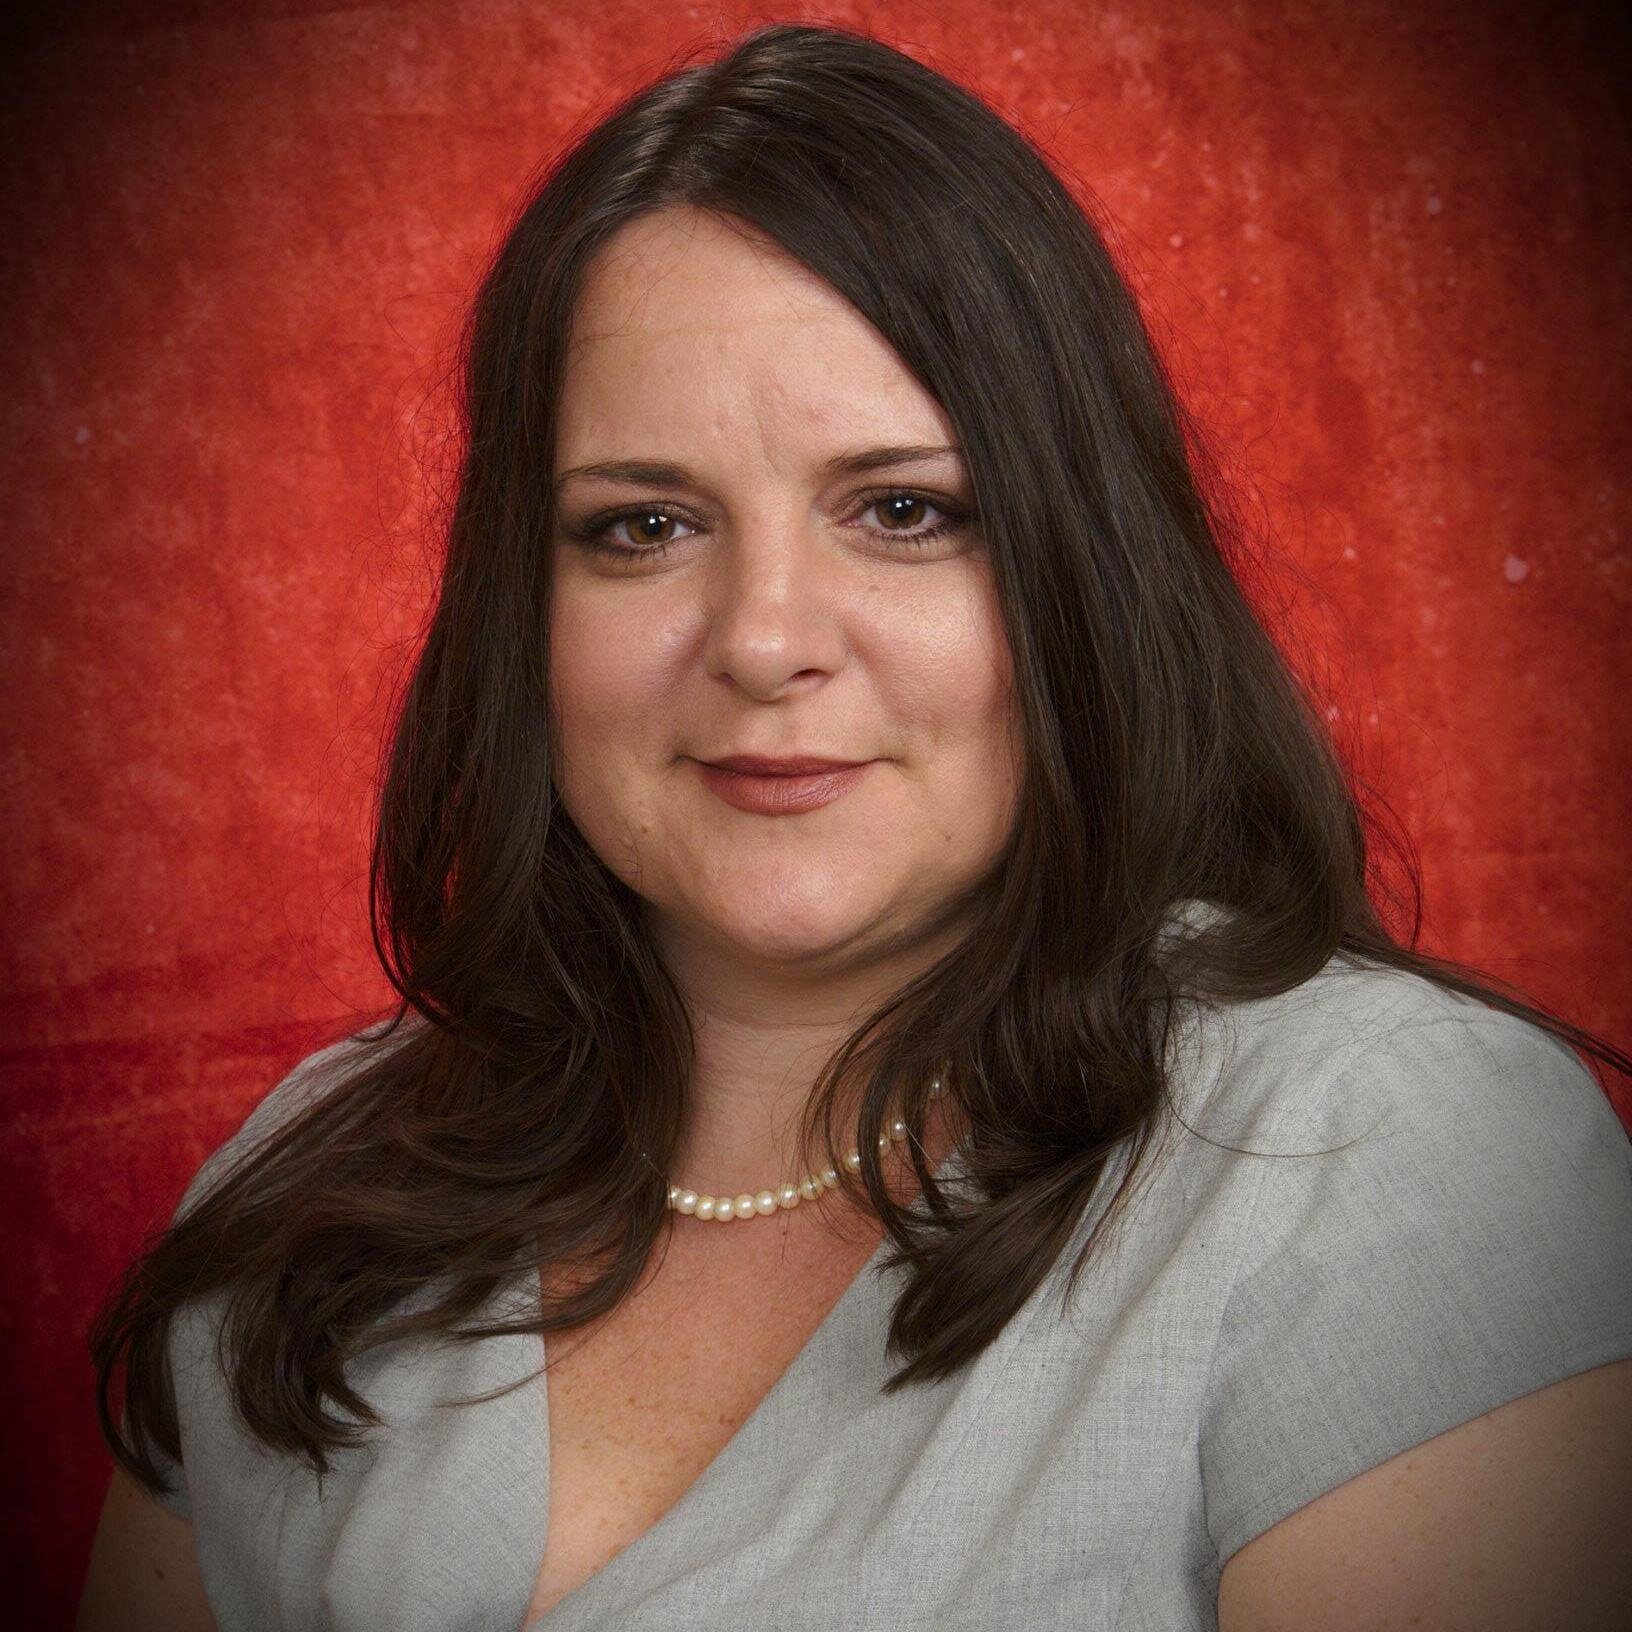 Heidi  Crimins, Esq. is the Founding Attorney at  Crimins Family Law  .   She is a Florida Supreme Court Certified Family Mediator. She has been collaboratively trained and is a member of the Central Florida Collaborative Law Group and International Association of Collaborative Professionals.